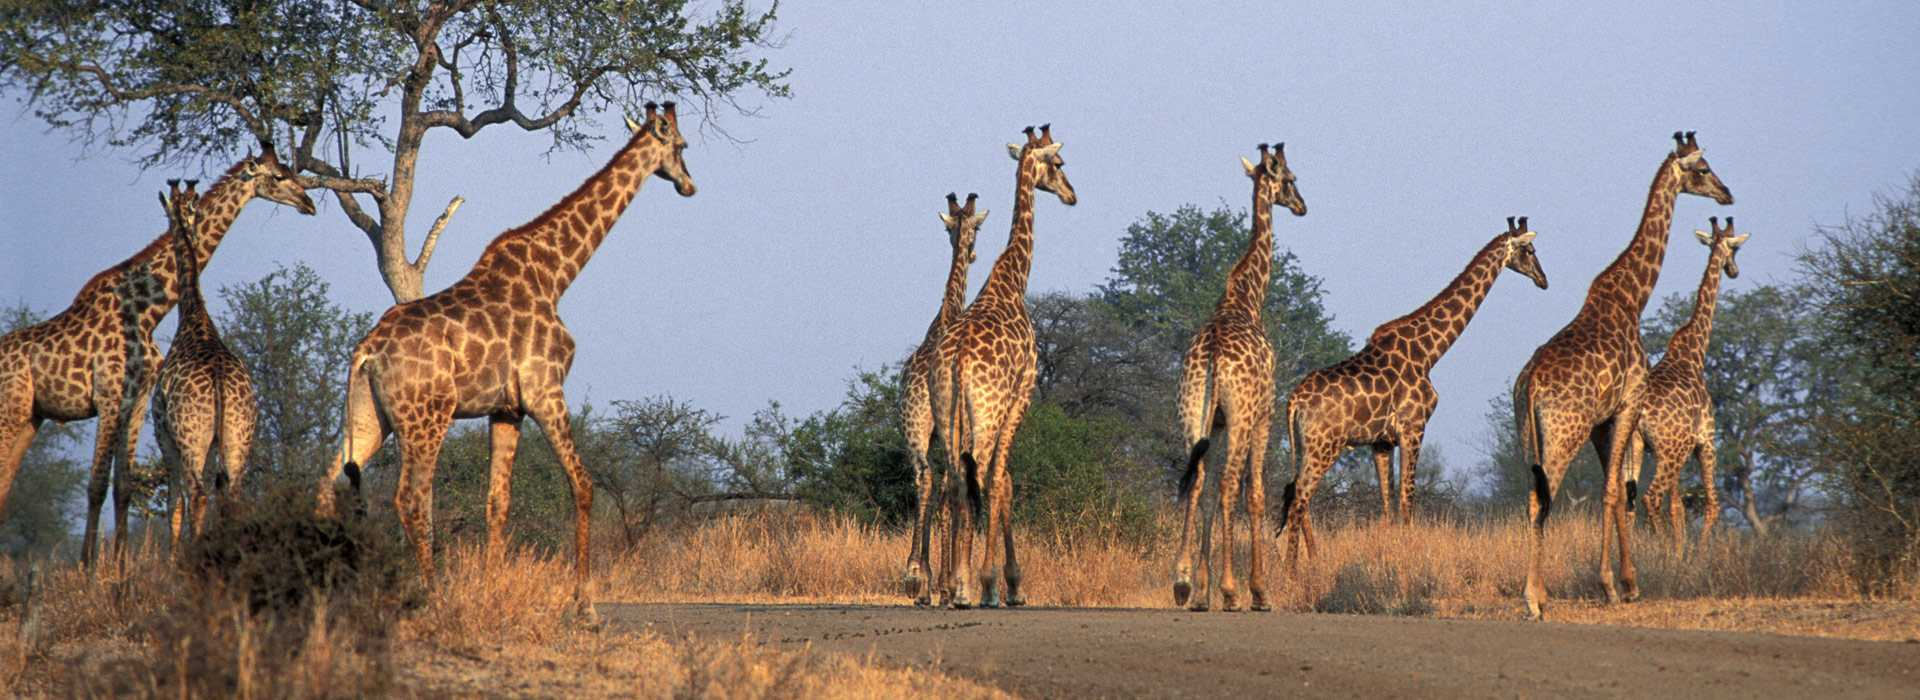 A Tower Of Giraffes In The Kruger